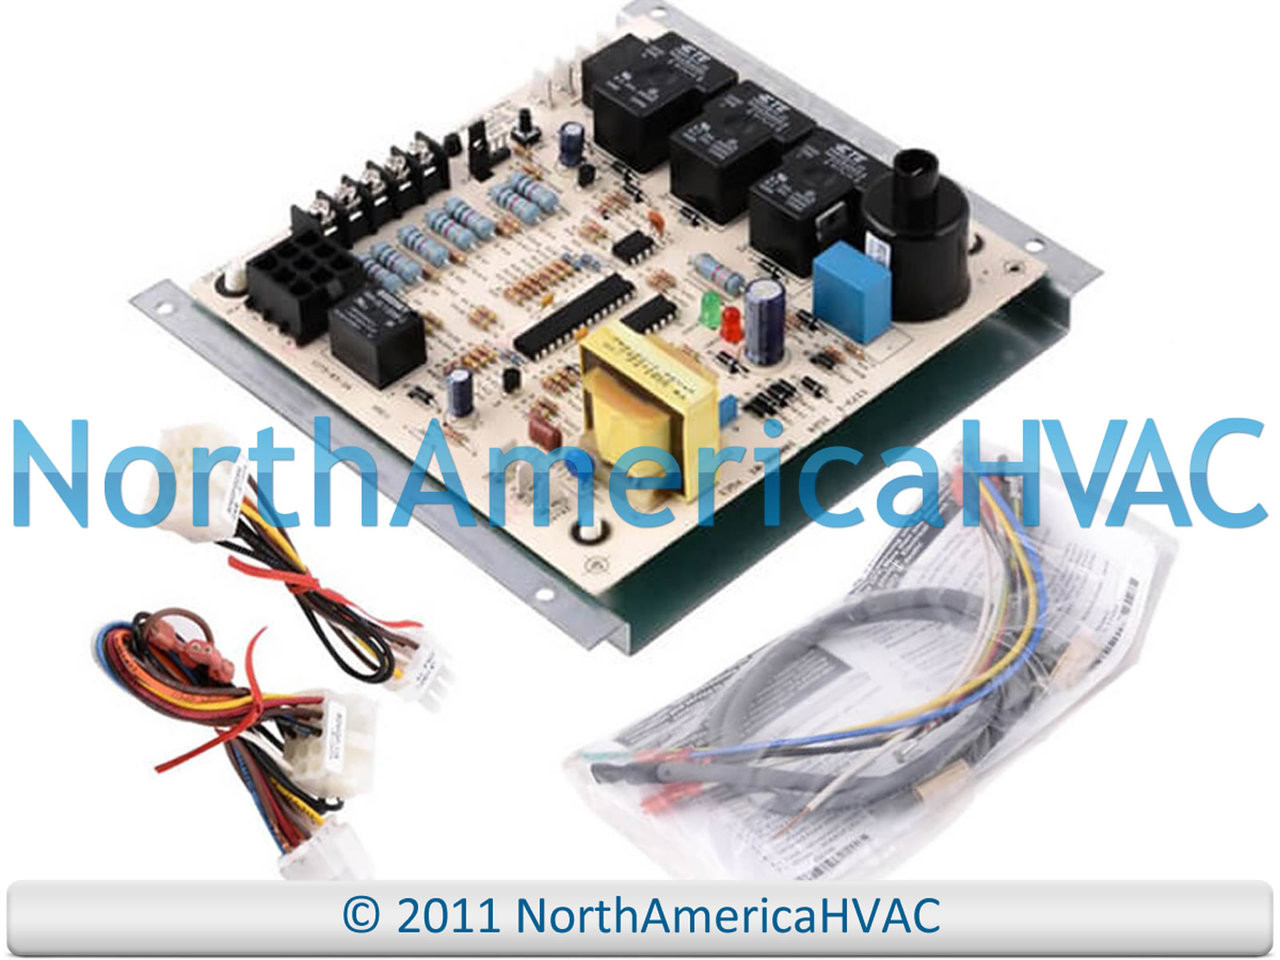 Oem Lennox Armstrong Ducane Furnace Control Circuit Board 33j62 Replacement Household Boards 33j6201